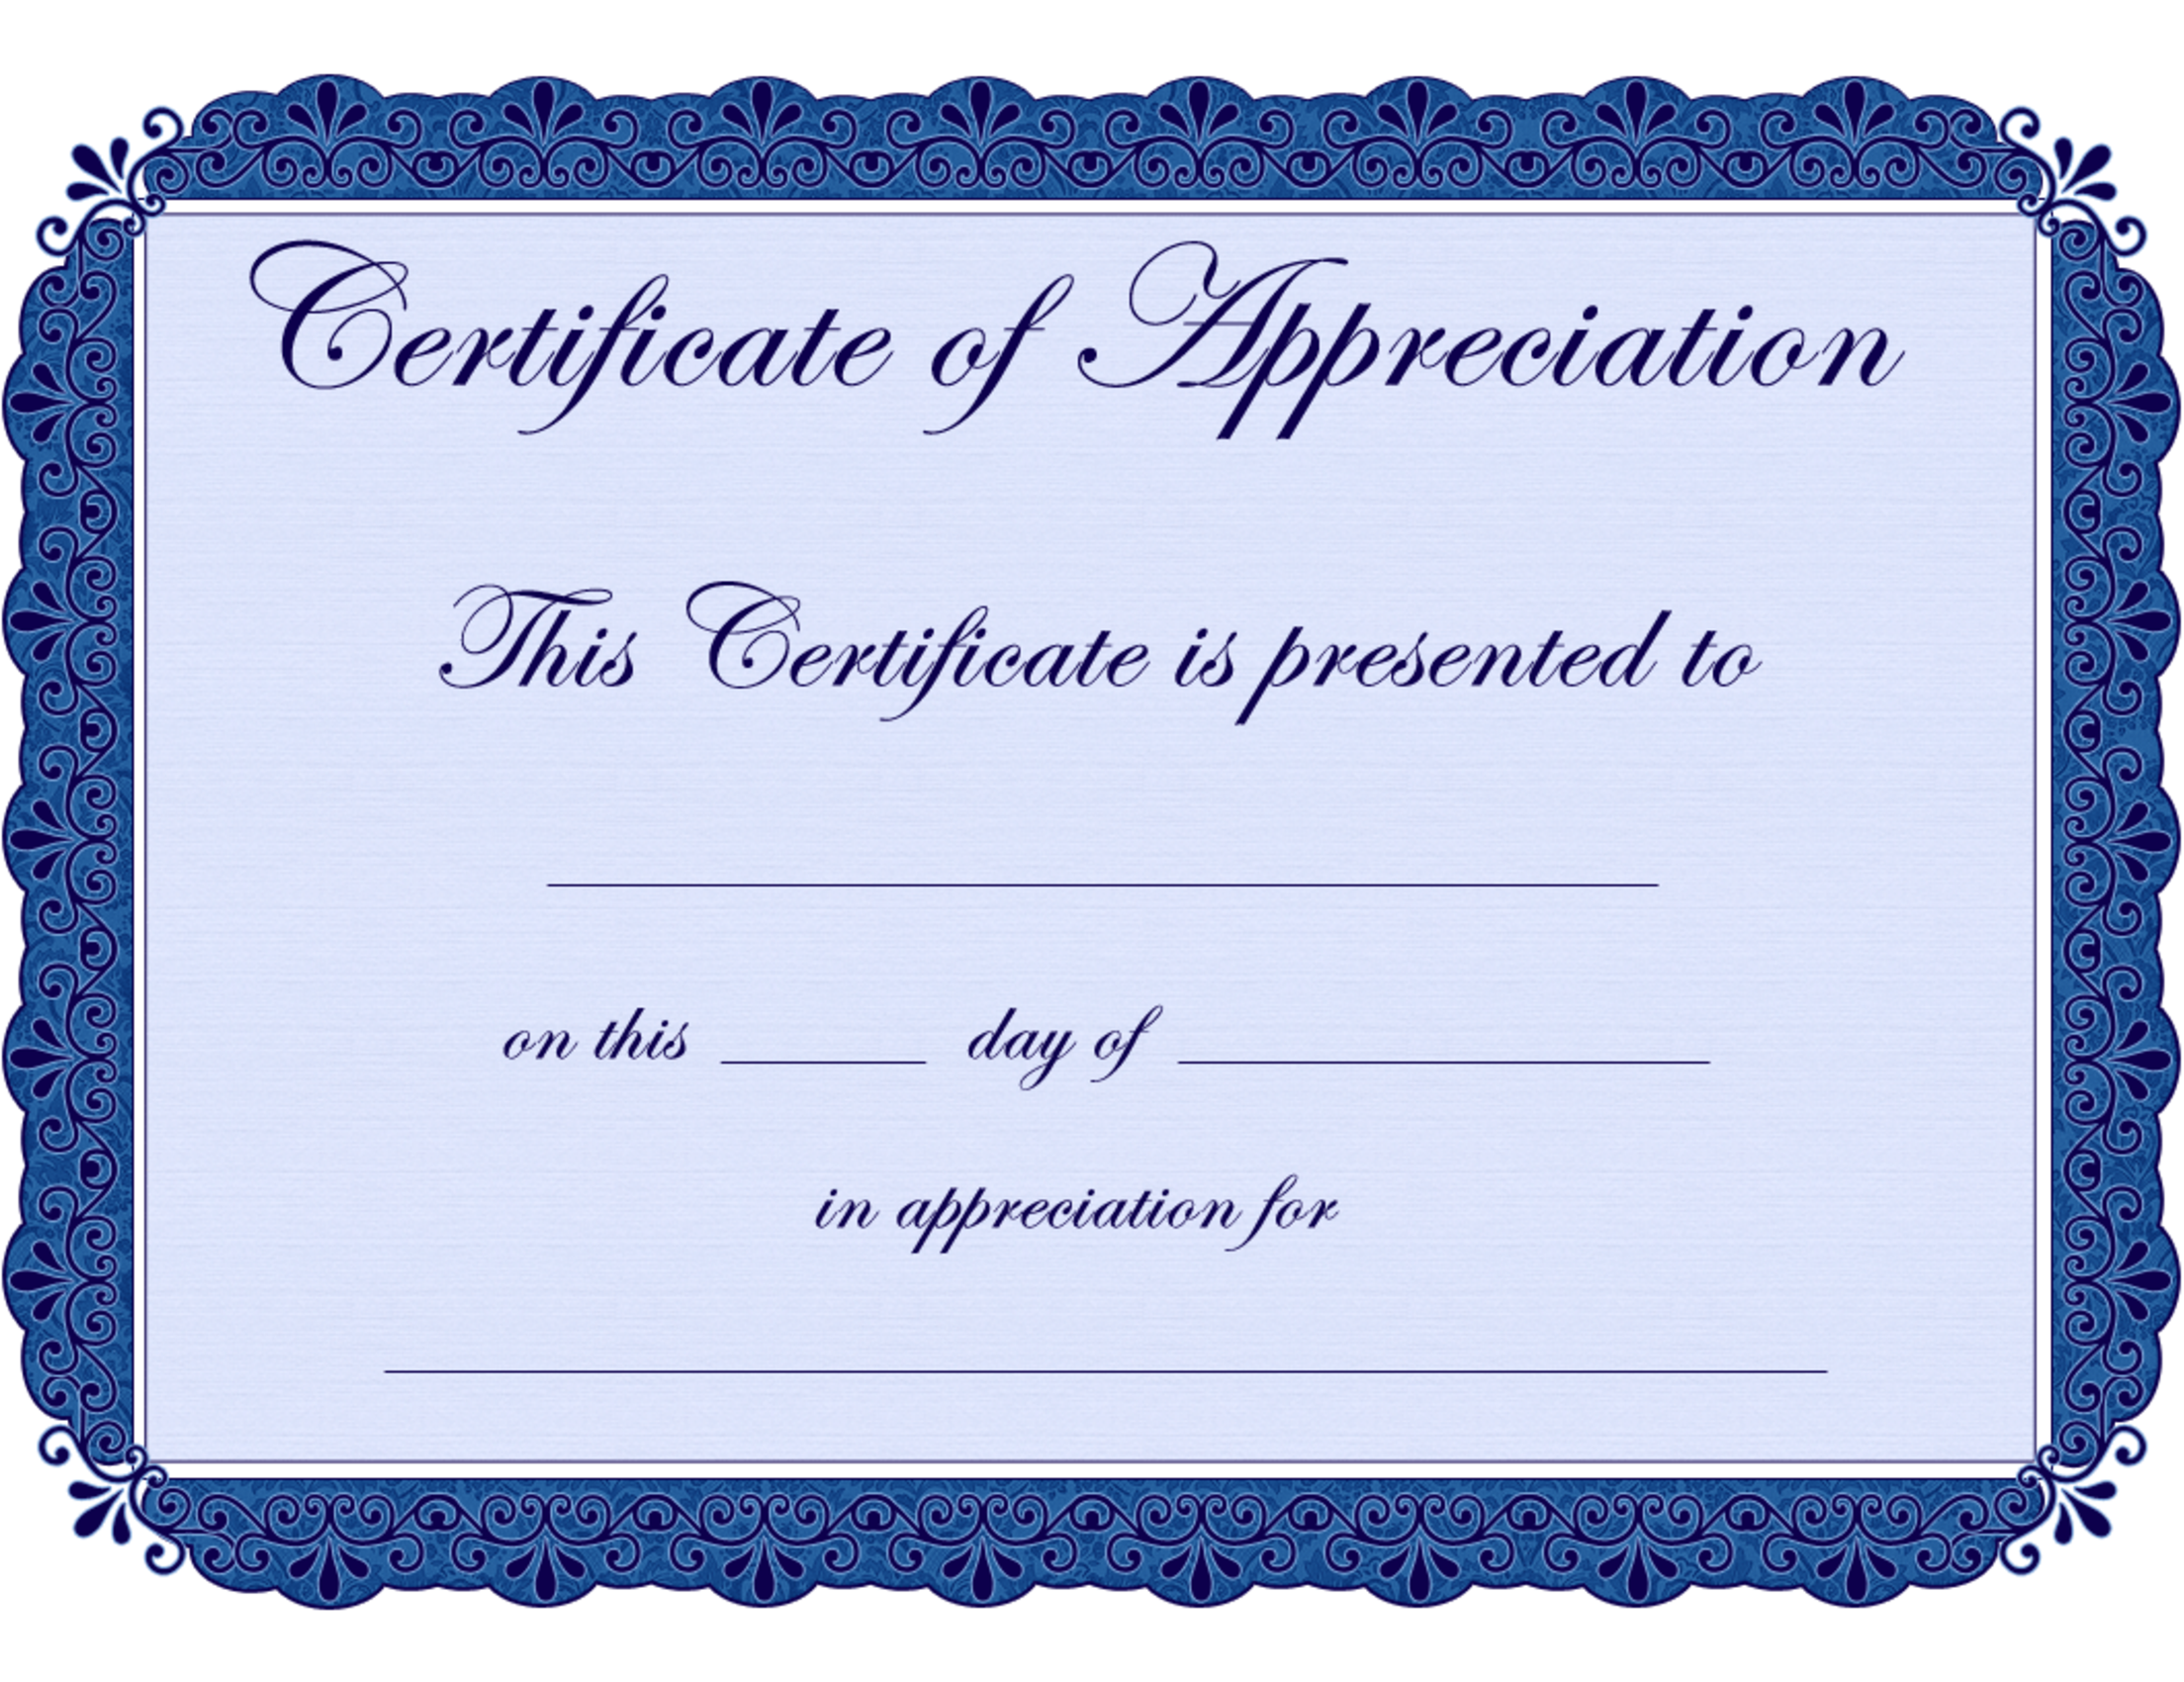 picture regarding Free Printable Certificates of Appreciation identified as totally free printable certificates Certification of Appreciation